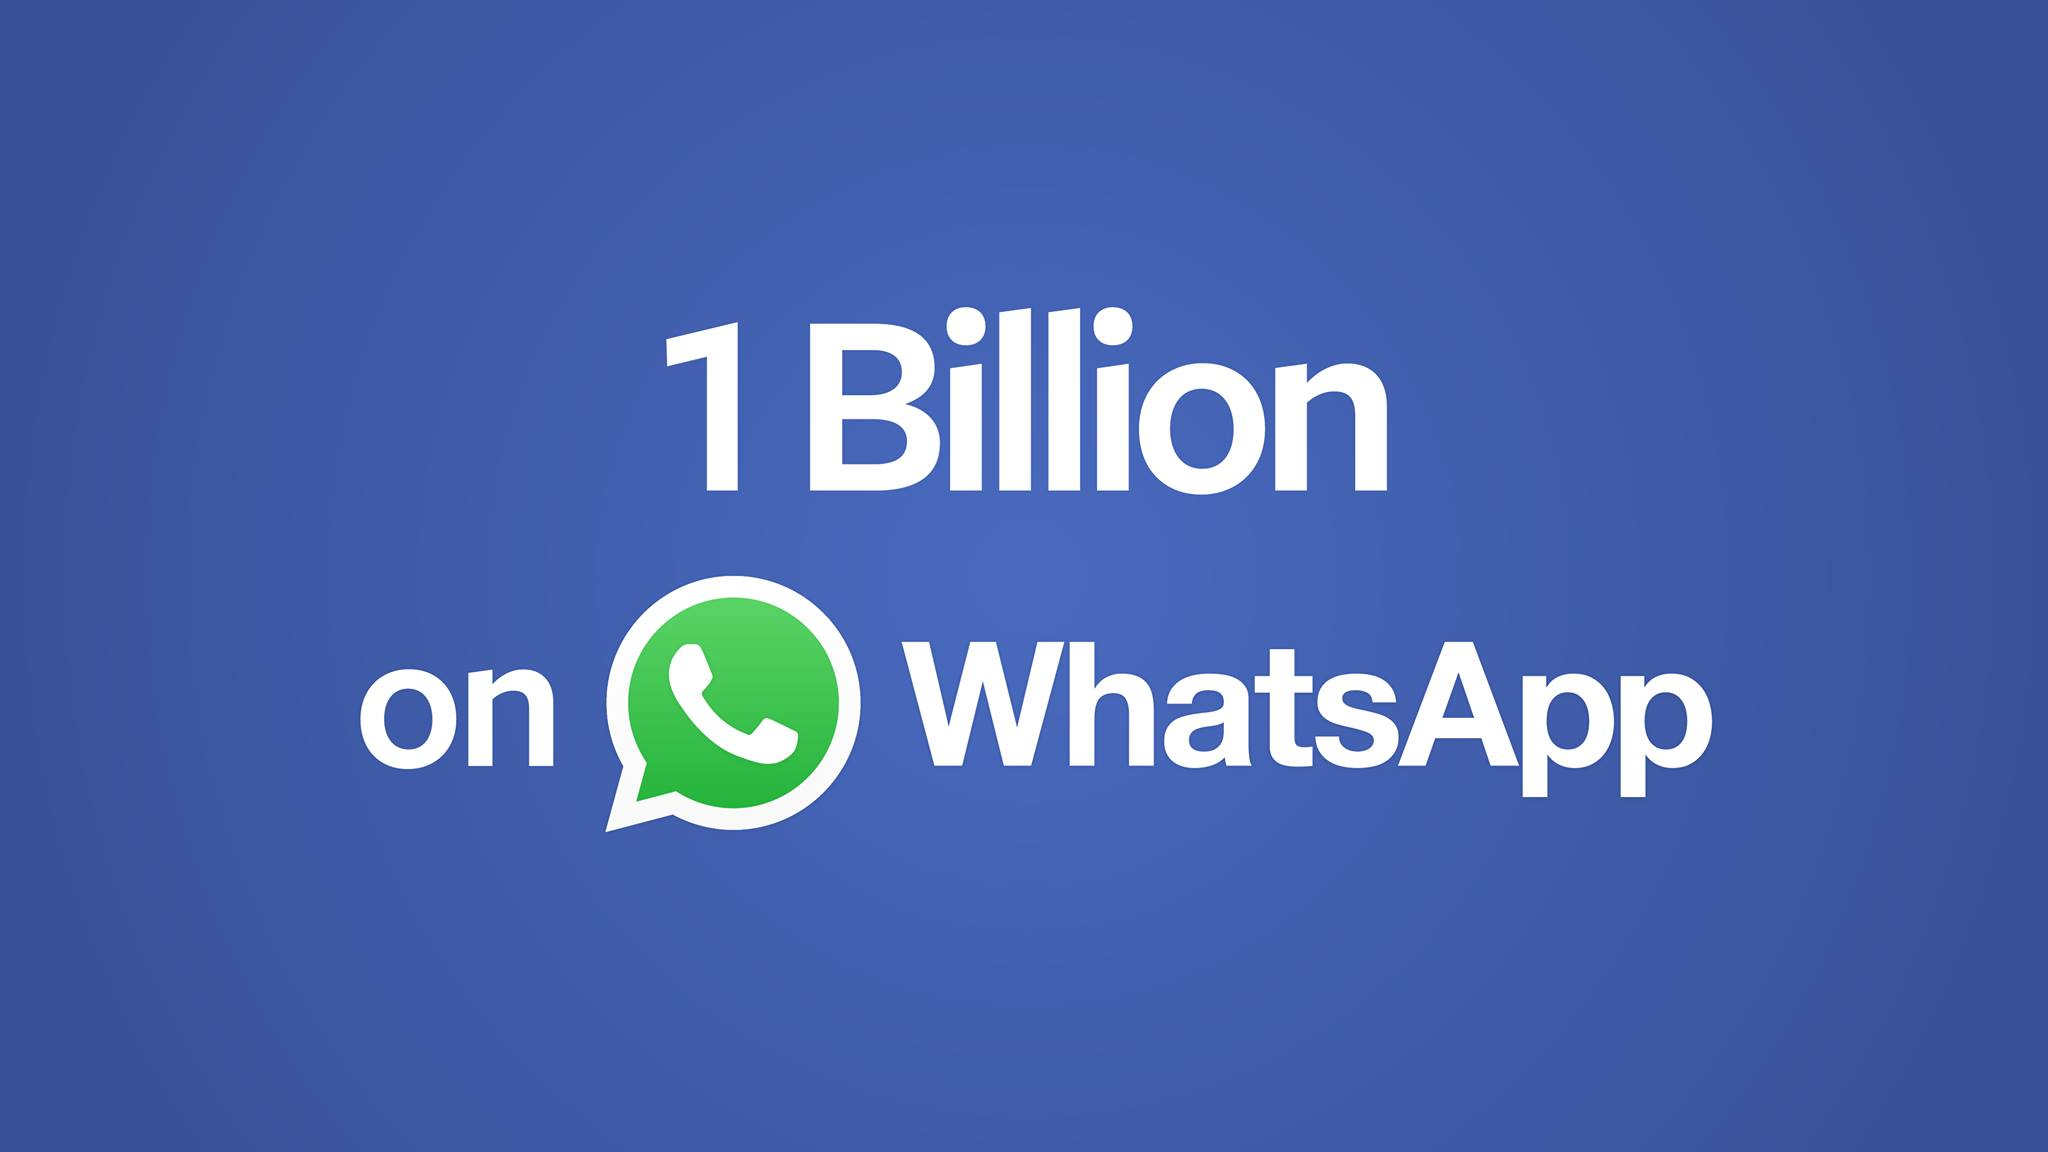 whatsapp billion